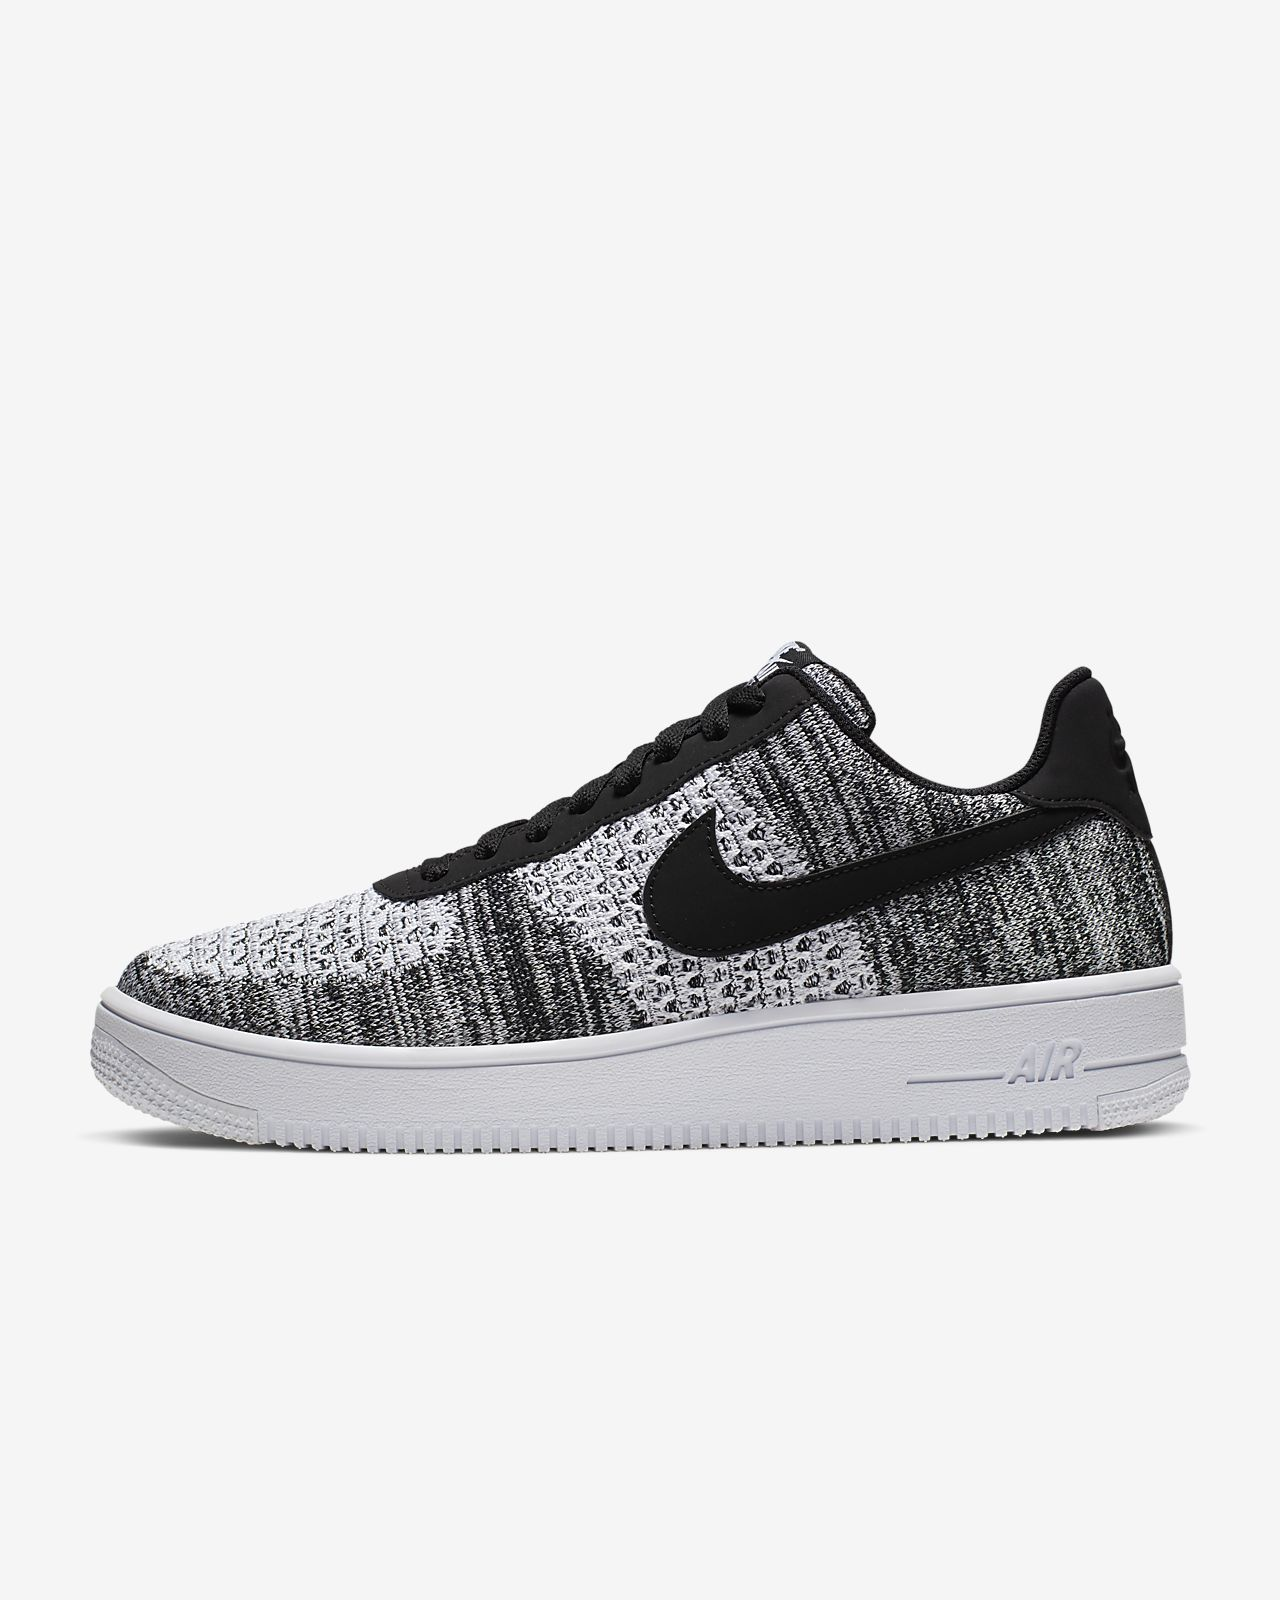 the latest 5116b 388dd Chaussure Nike Air Force 1 Flyknit 2.0 pour Homme. Nike.com CA